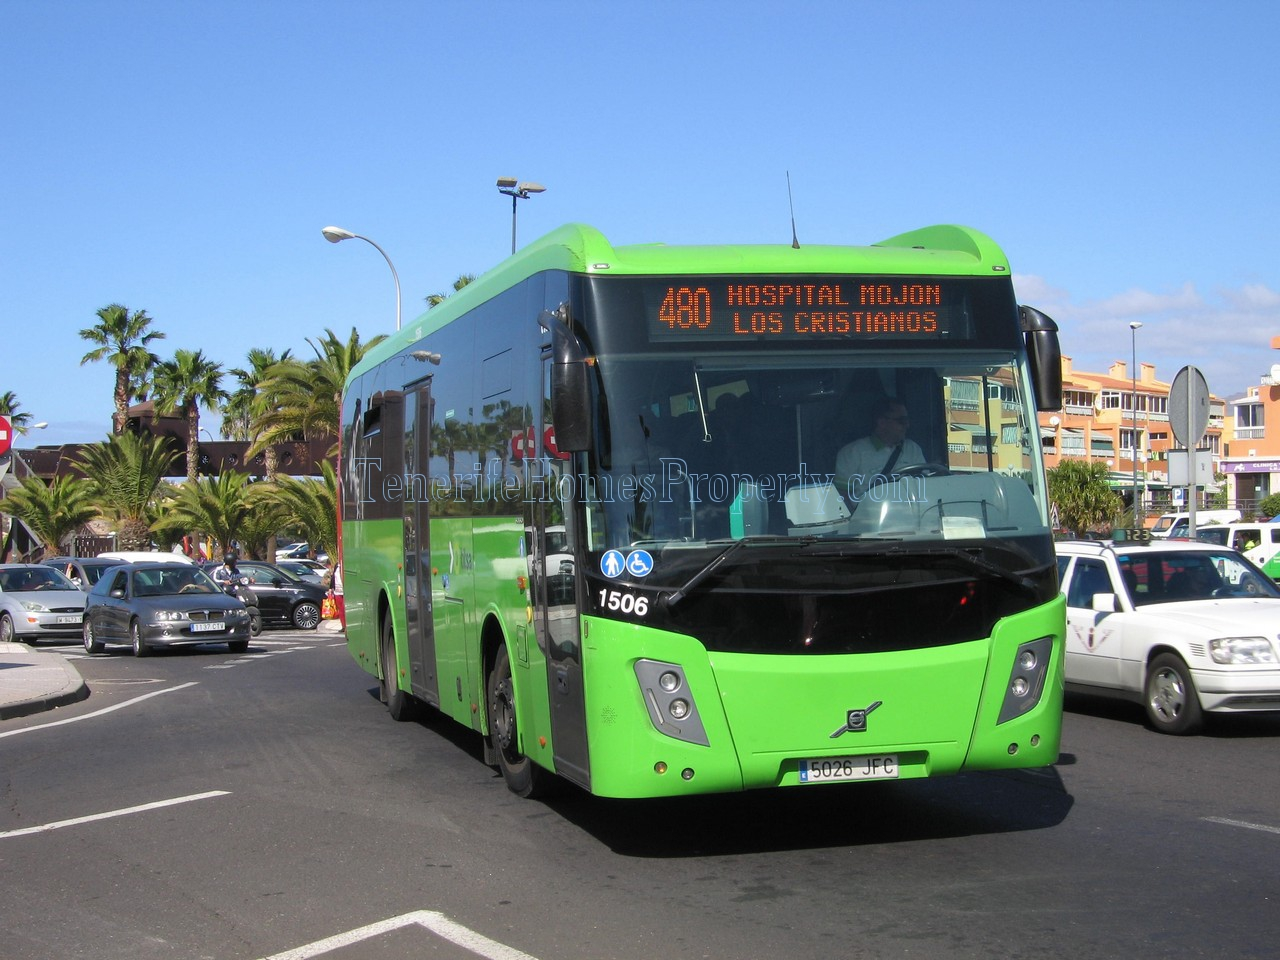 Tenerife bus in Los Cristianos bus station 480